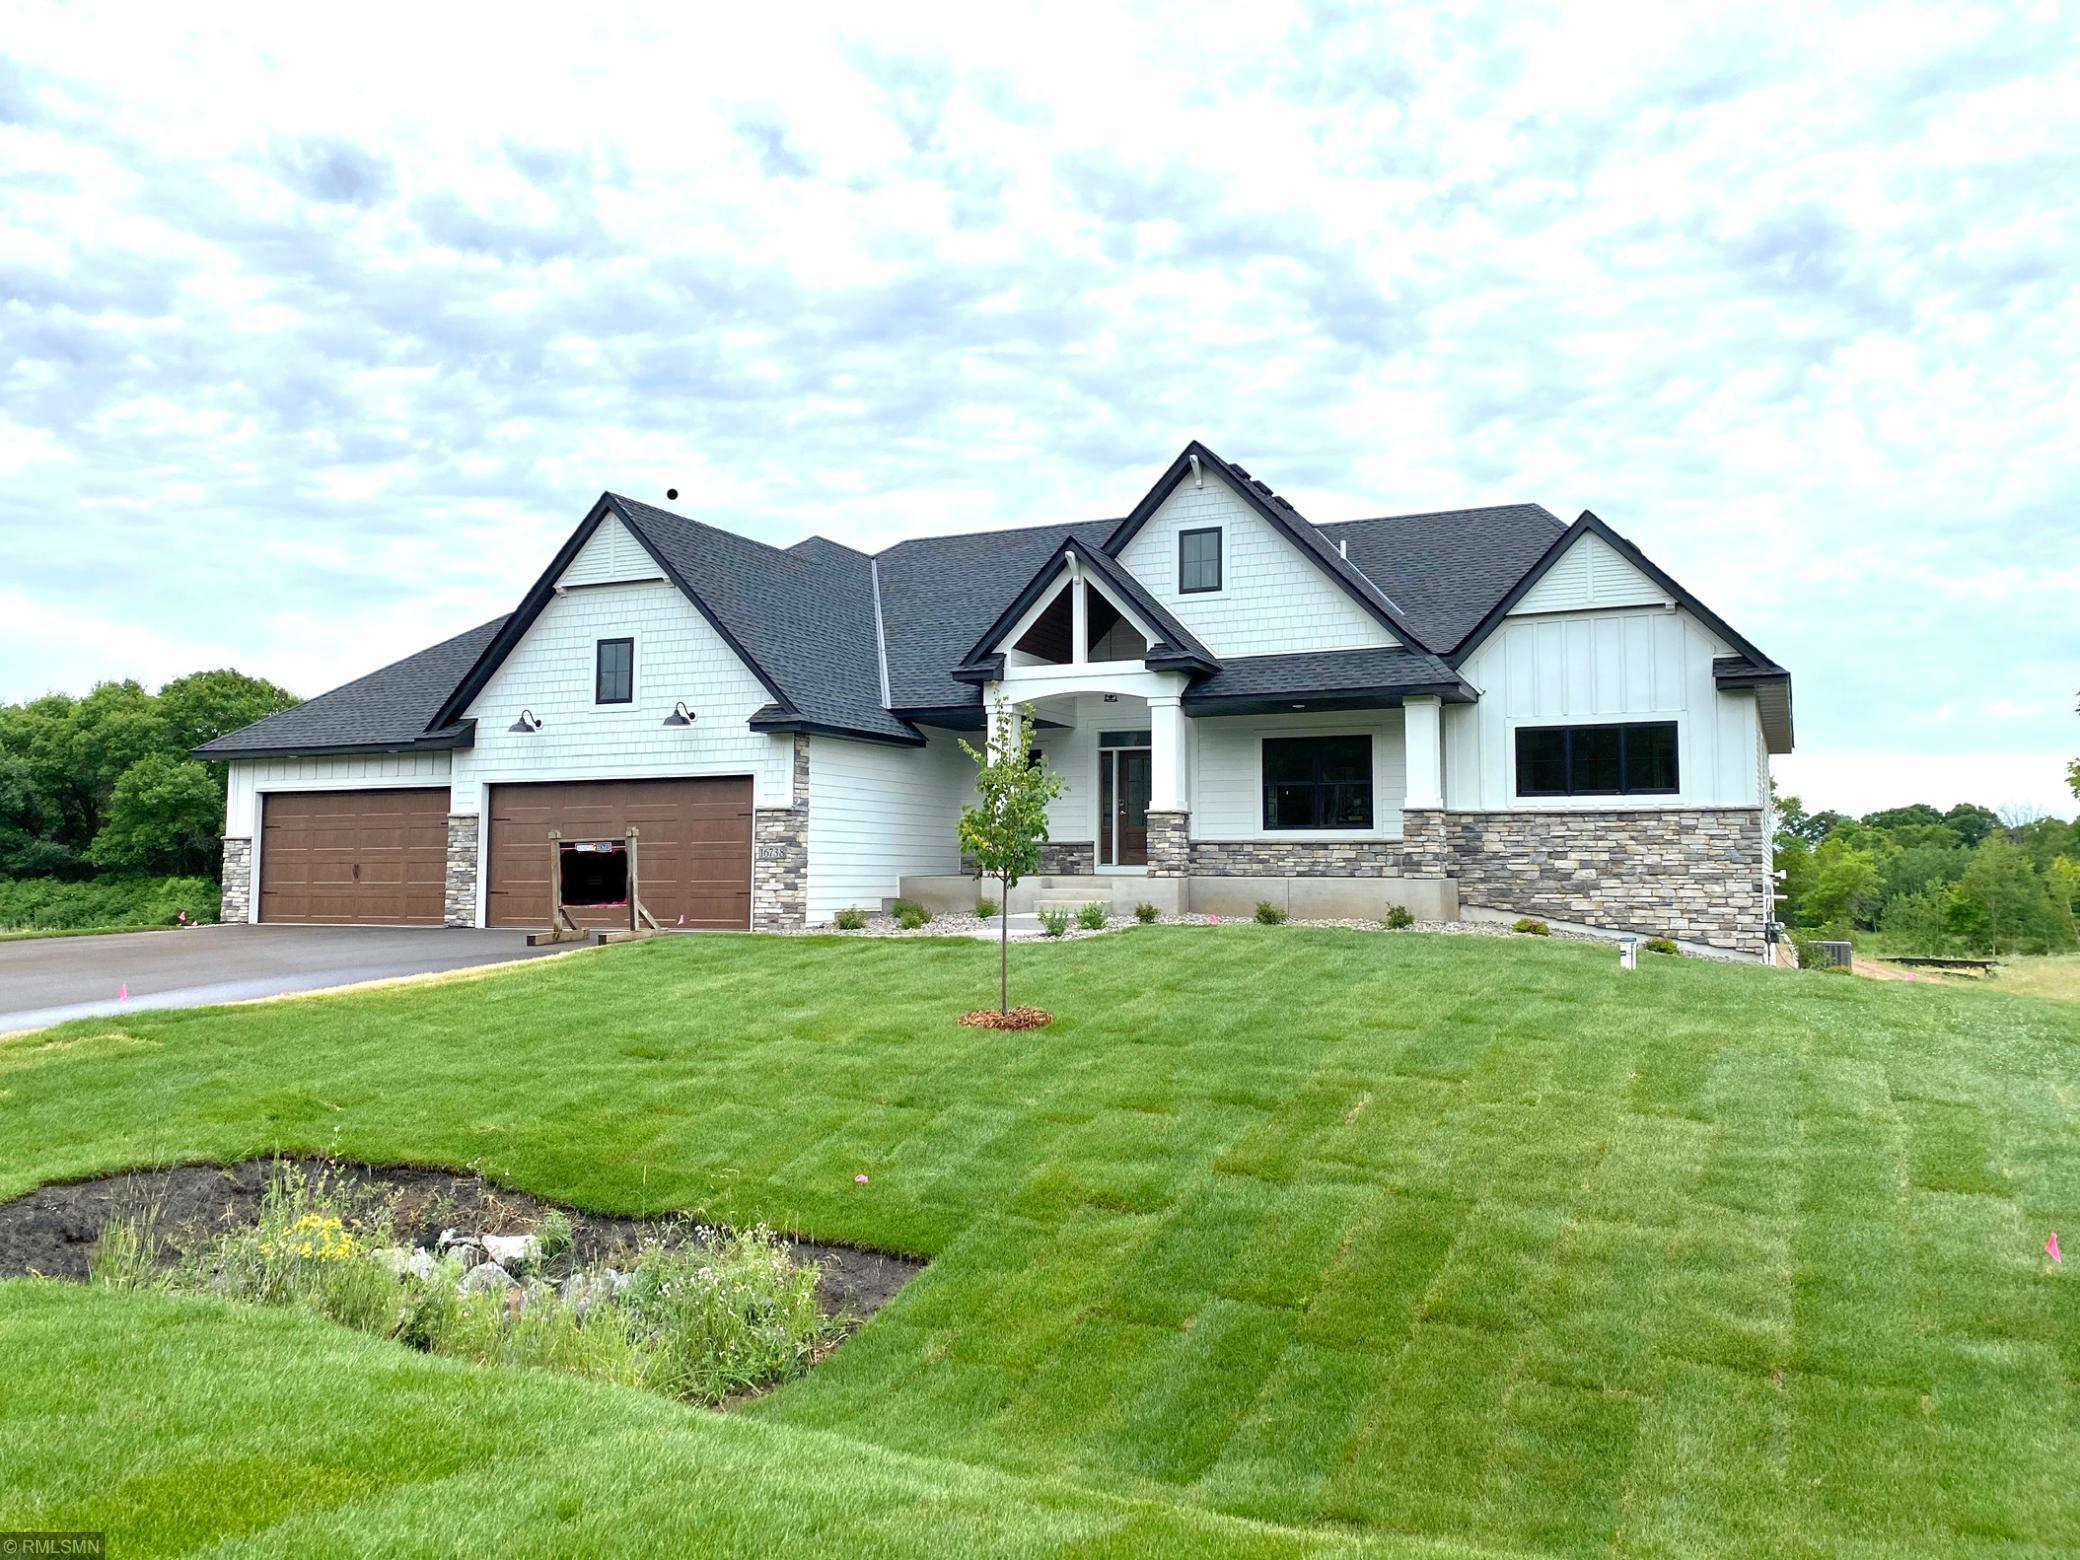 16738 Dakota NW Property Photo - Andover, MN real estate listing